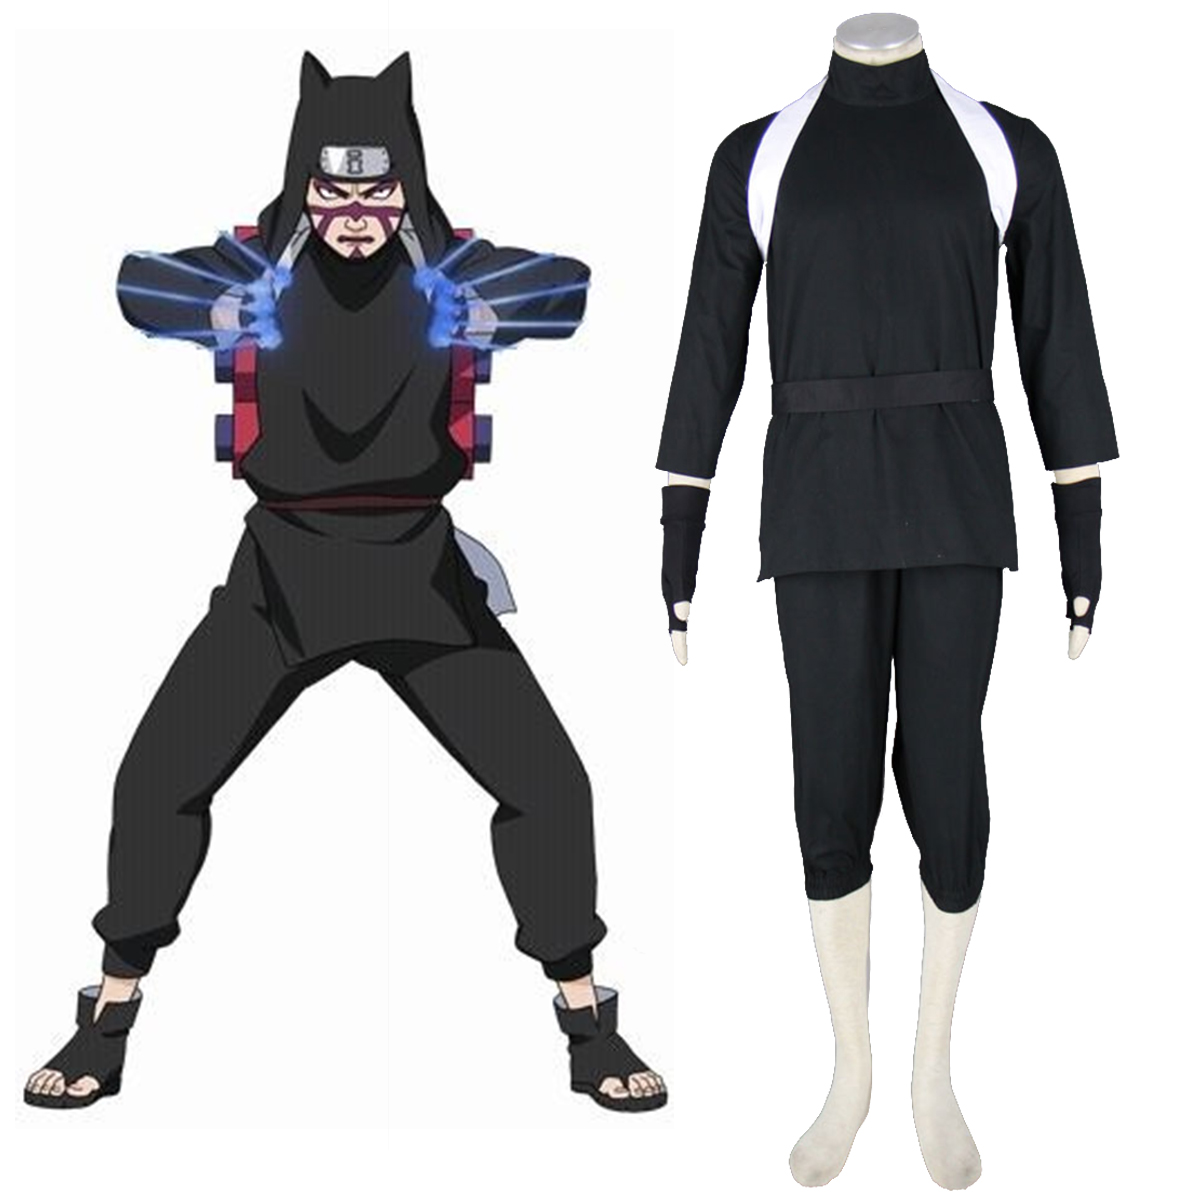 Naruto Shippuden Kankuro 2 Anime Cosplay Costumes Outfit